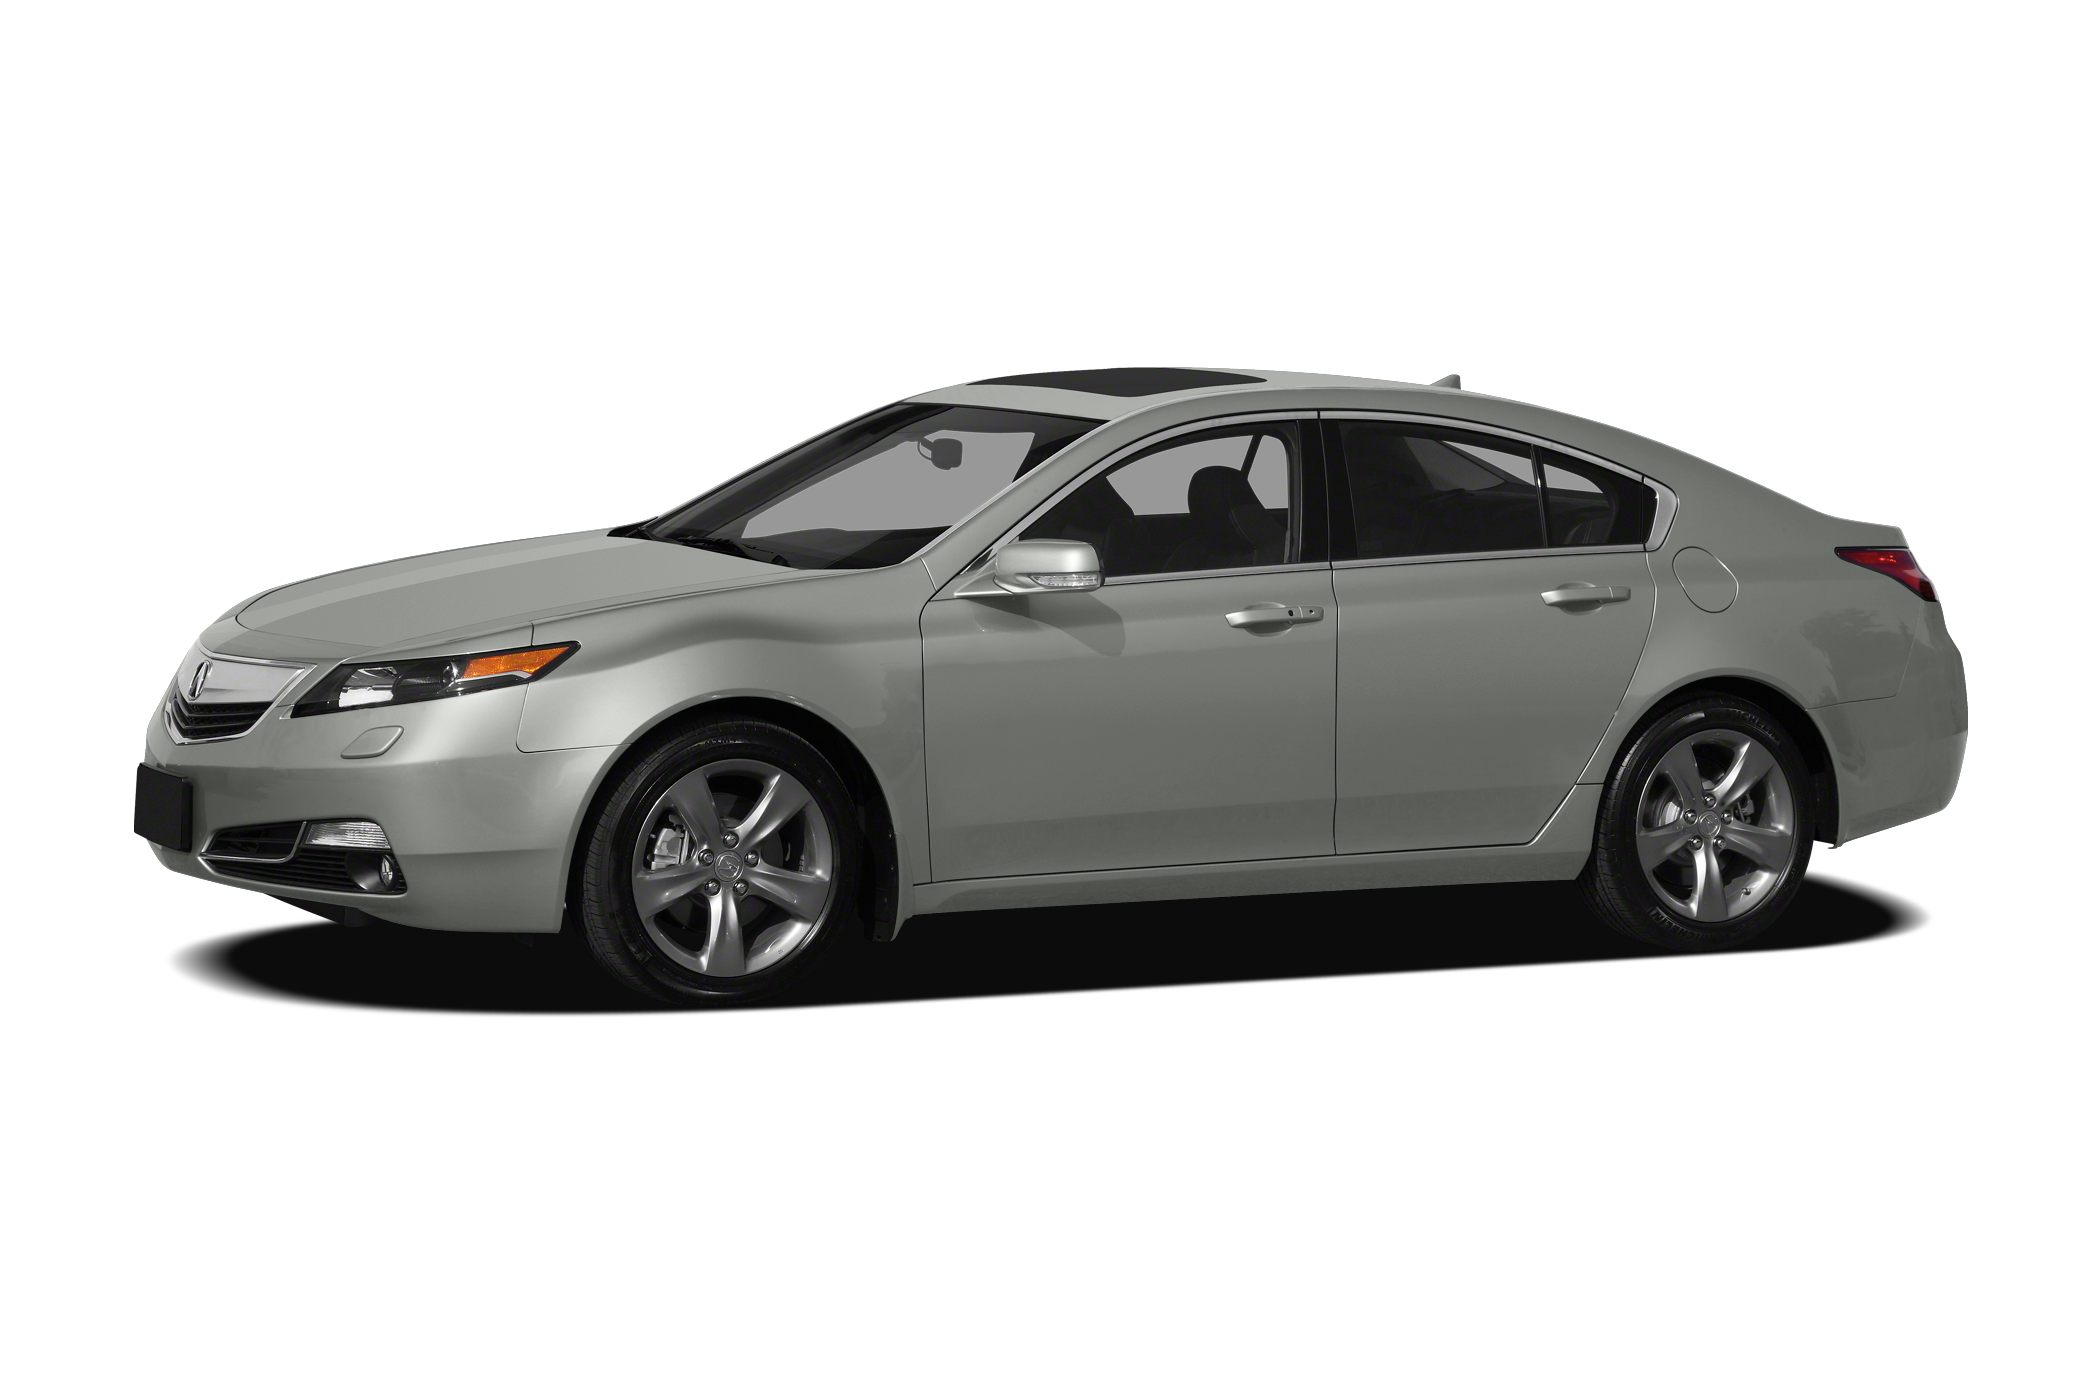 2012 Acura TL 3.5 Sedan for sale in Tulsa for $22,988 with 25,494 miles